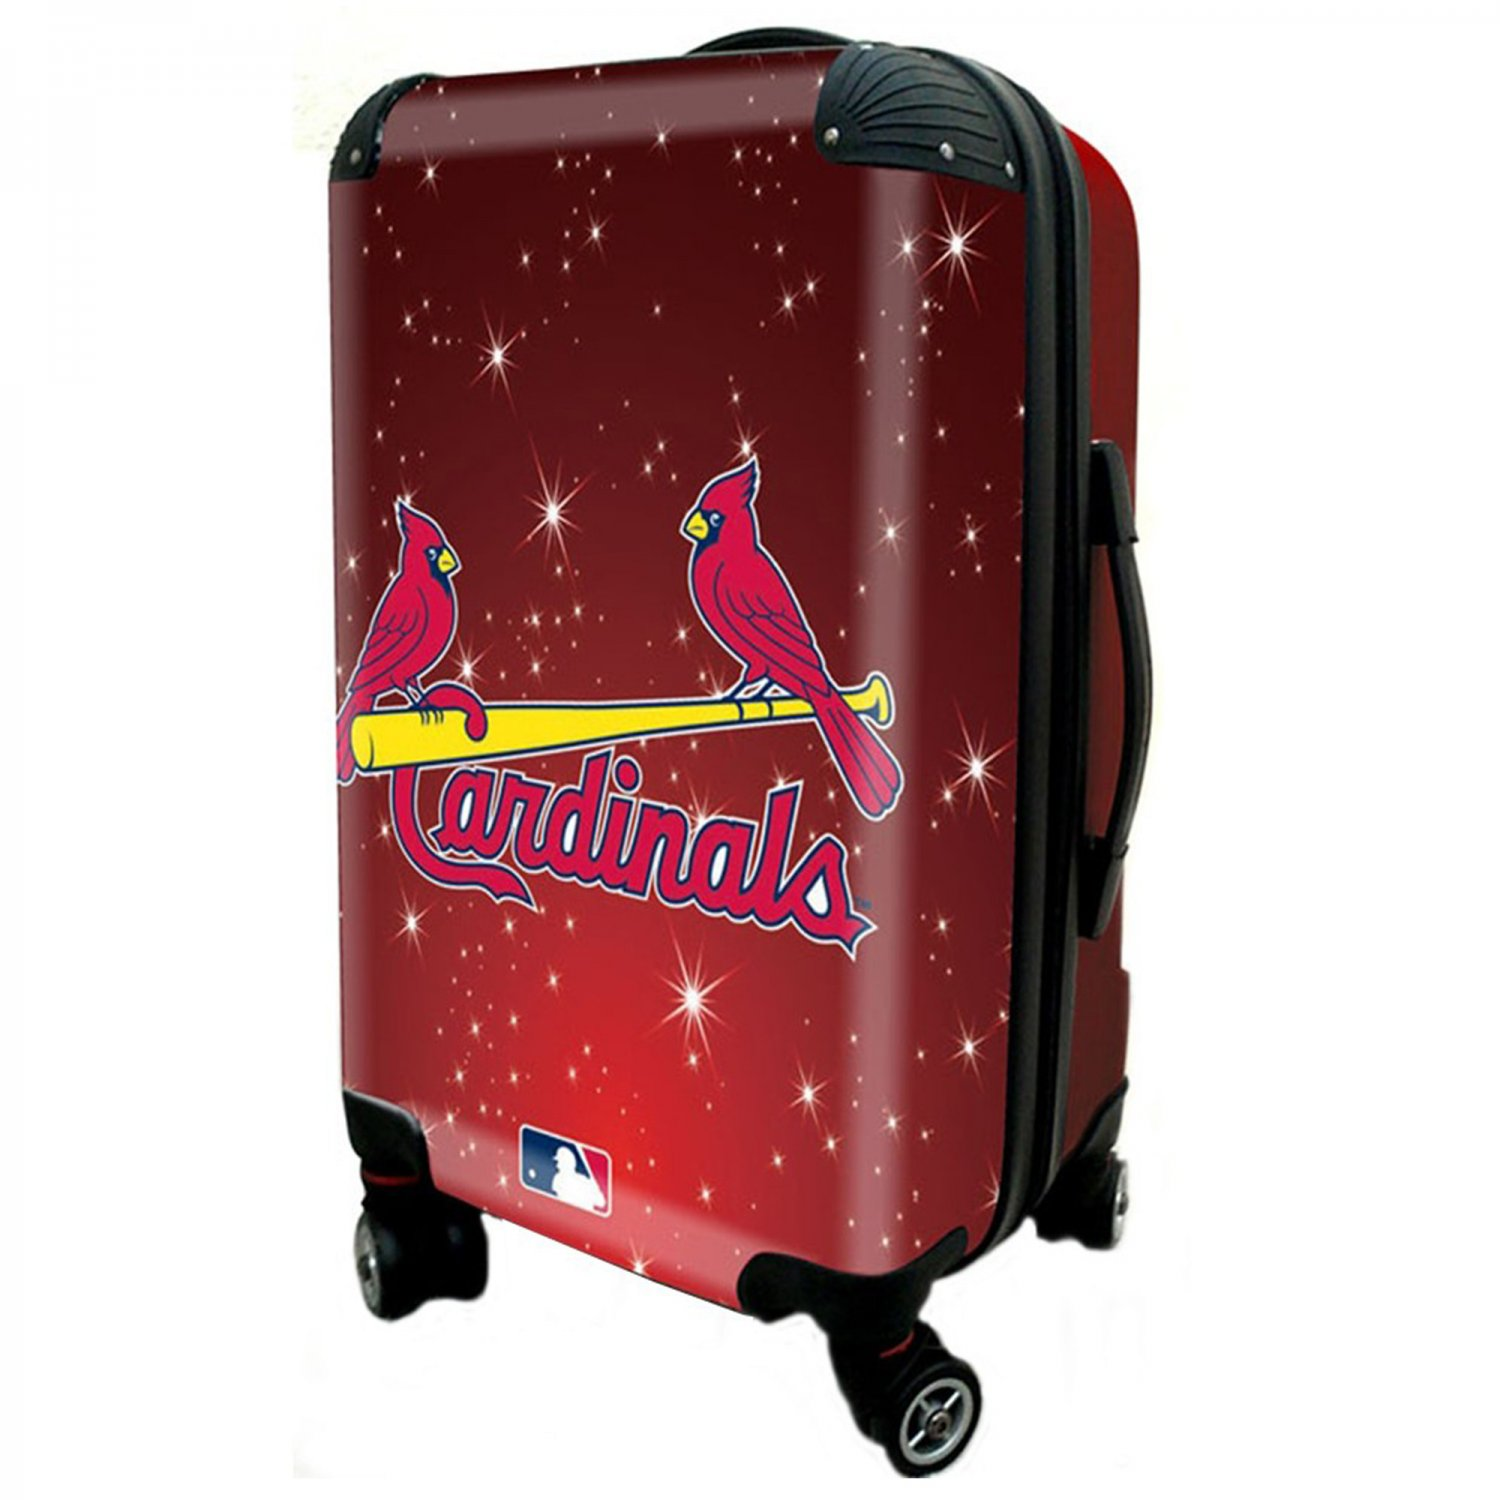 "St Louis Cardinals, 21"" Clear Poly Carry-On Luggage by Kaybull #STL11"